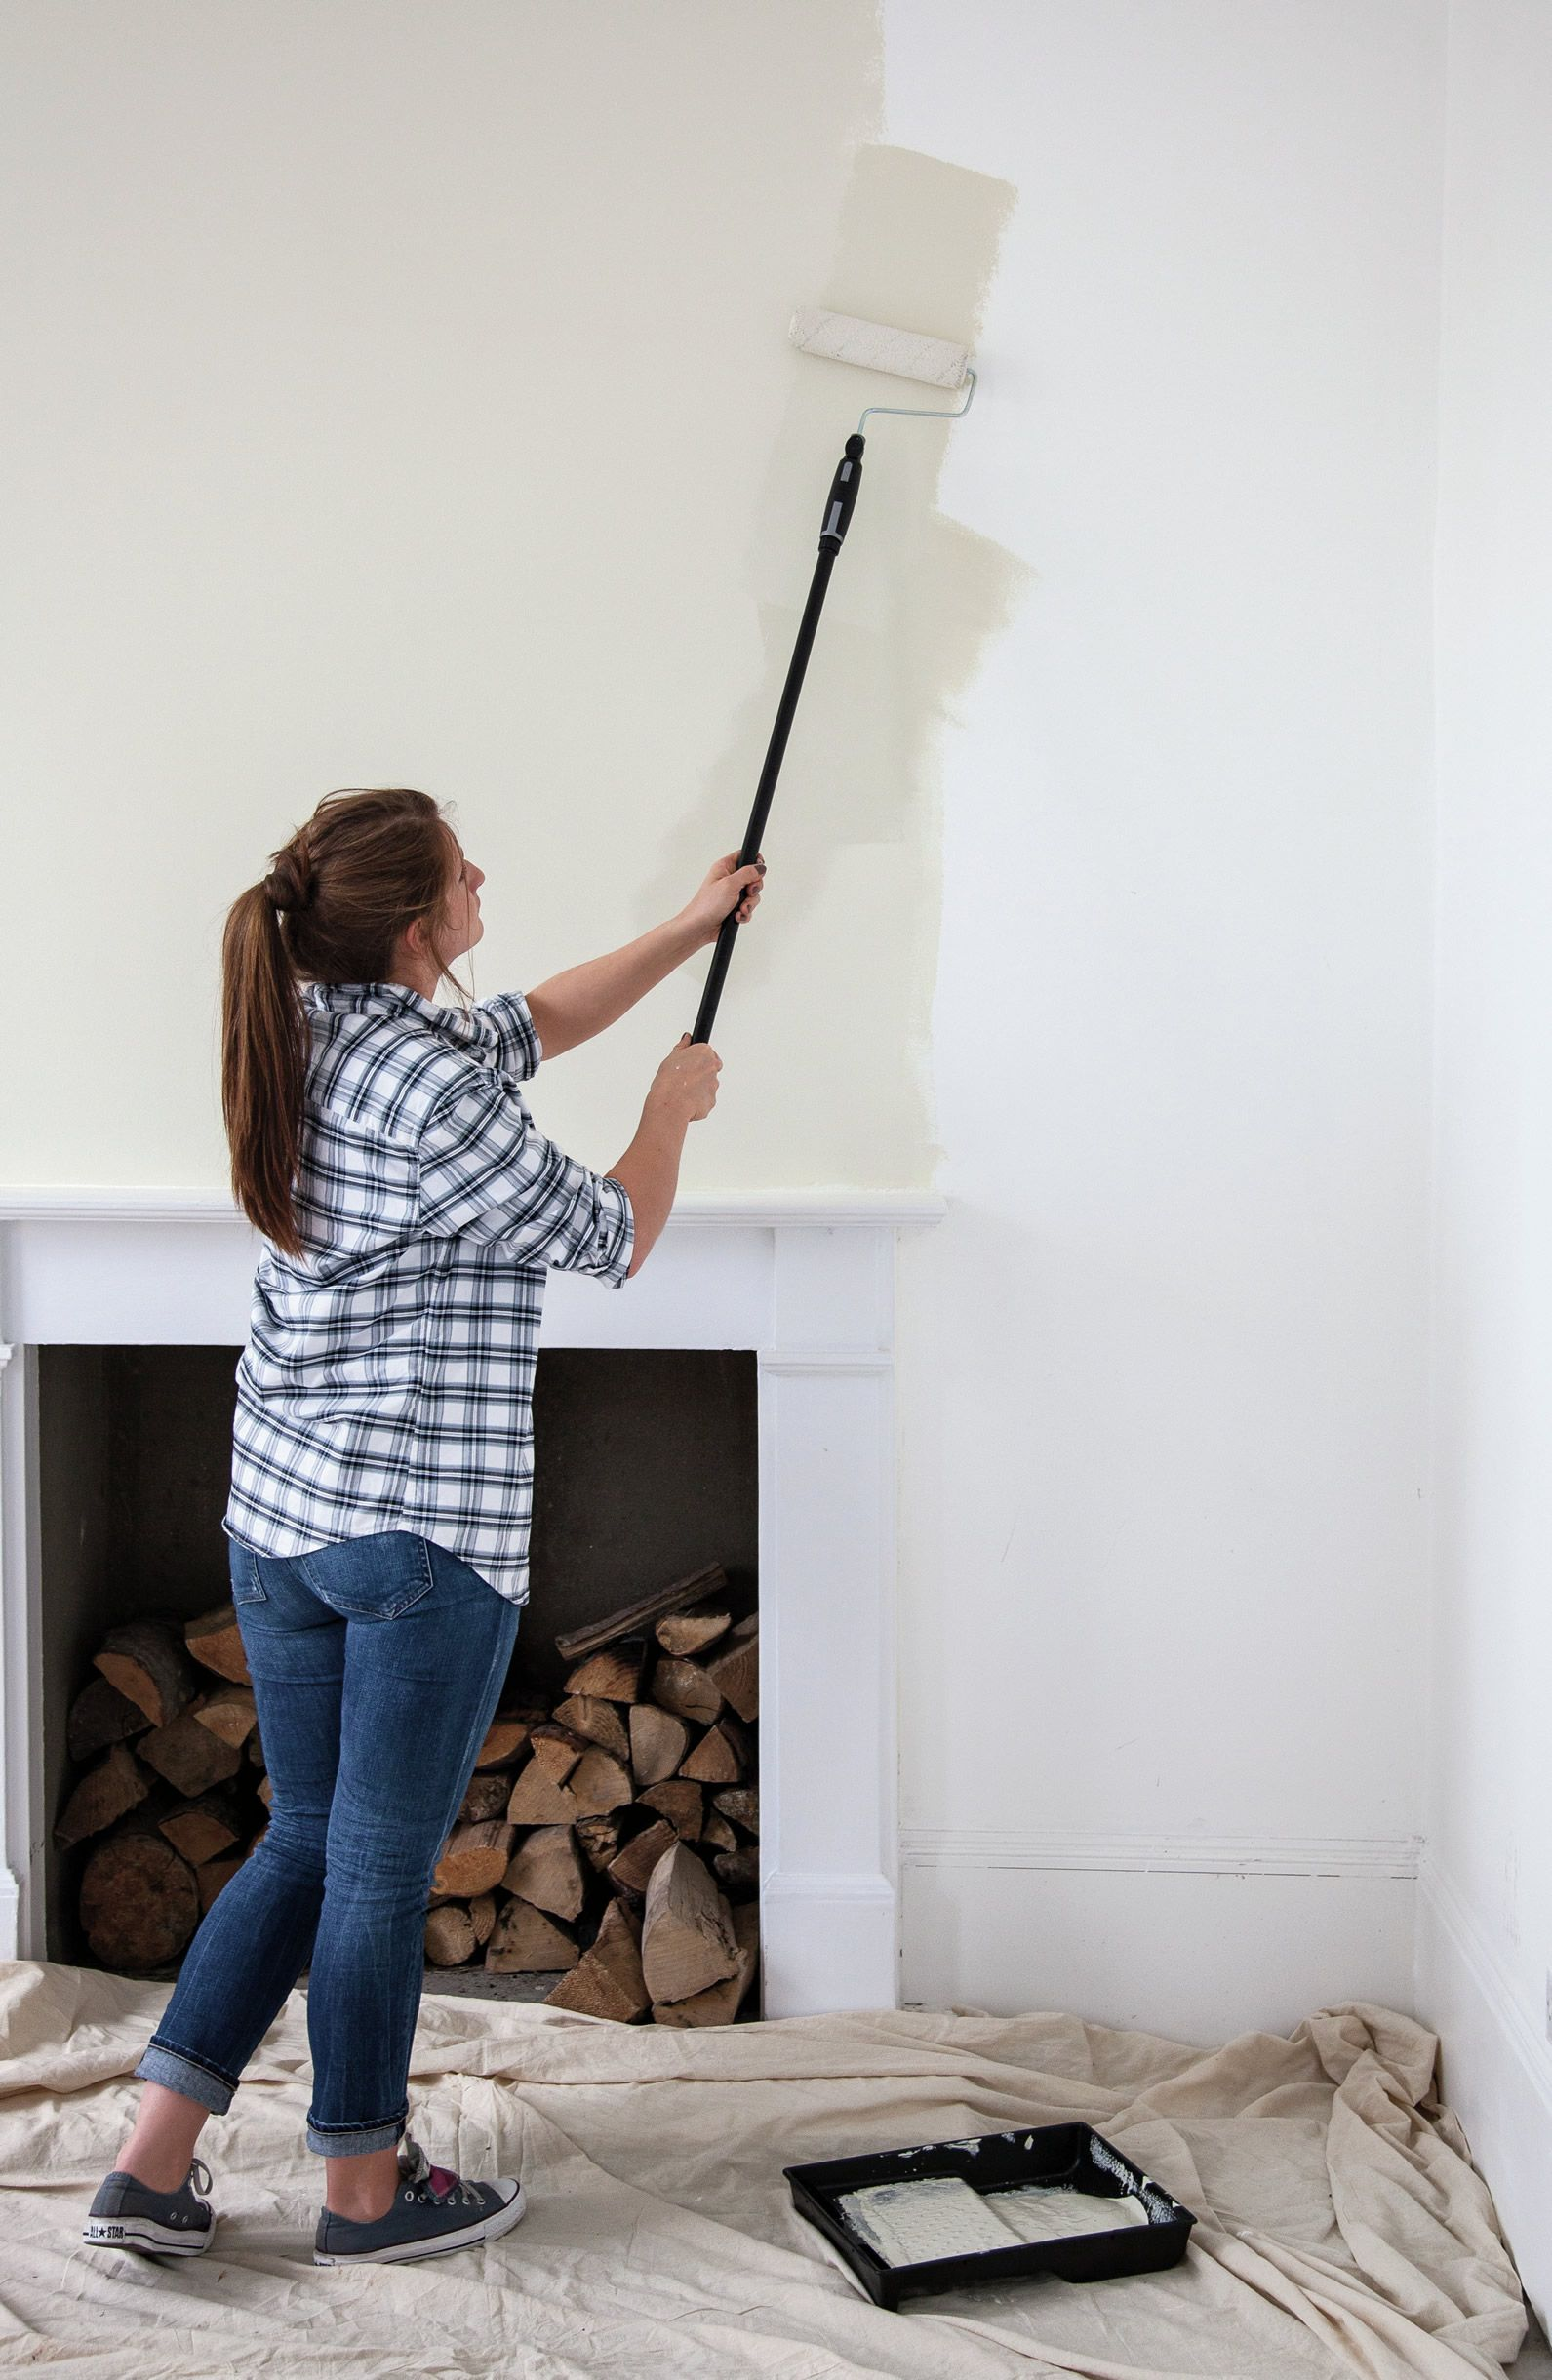 Excellent Advice On How To Avoid A Bad Home Improvement Project ...